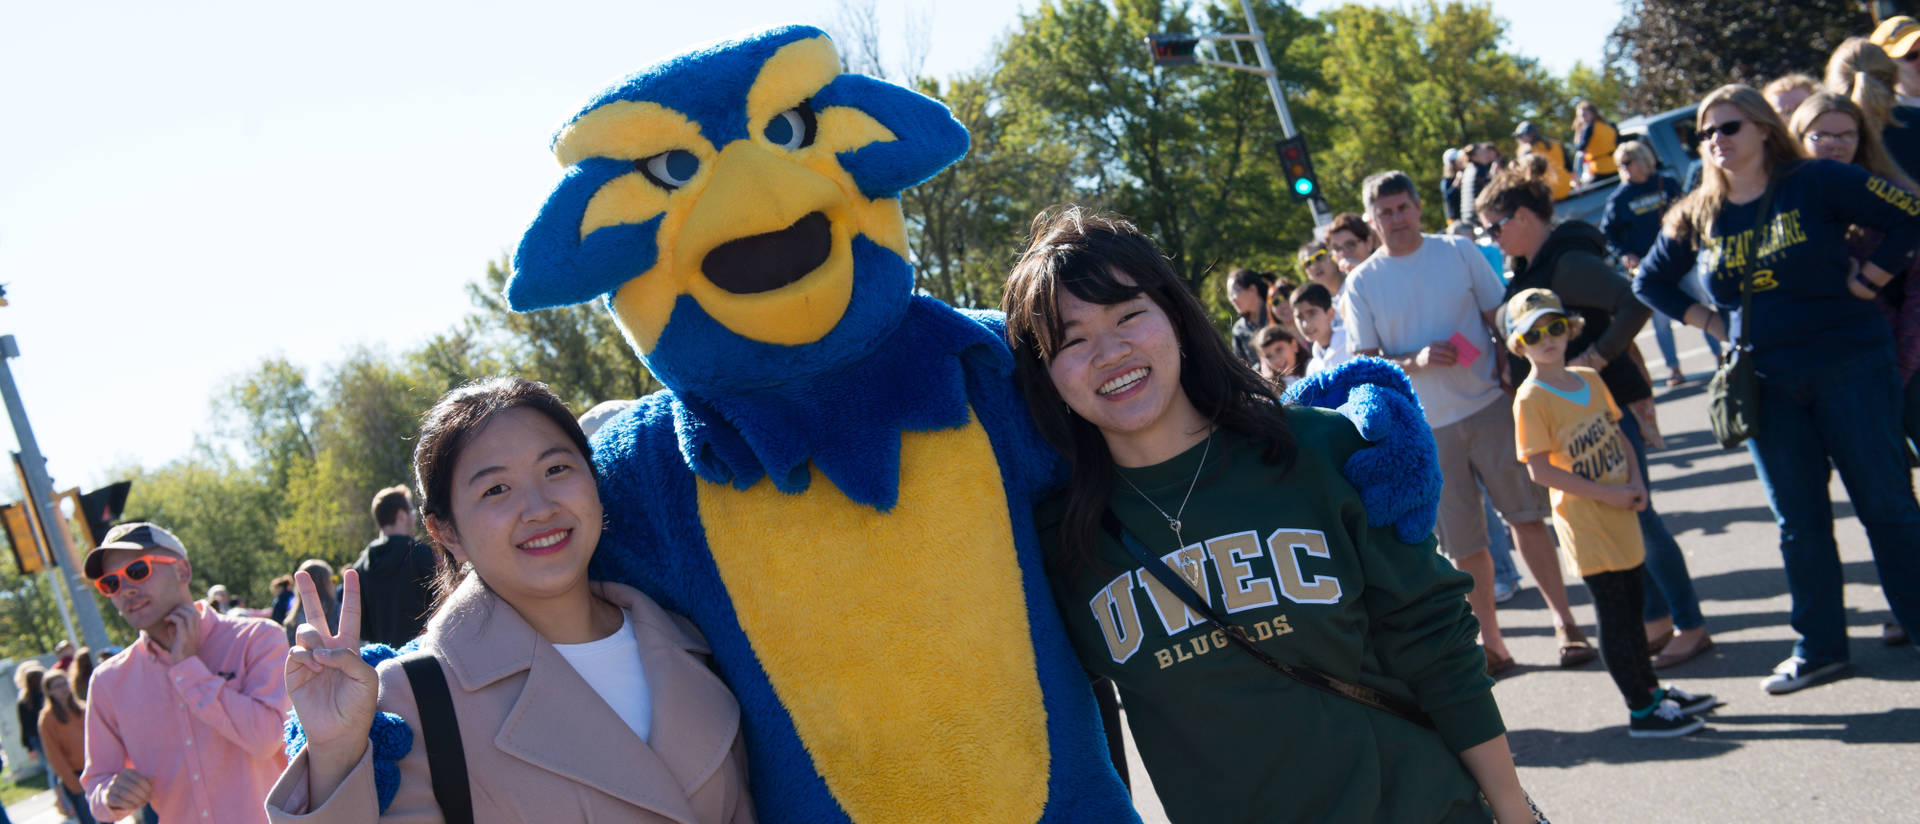 Blu the mascot poses with students at the 2017 Homecoming Parade